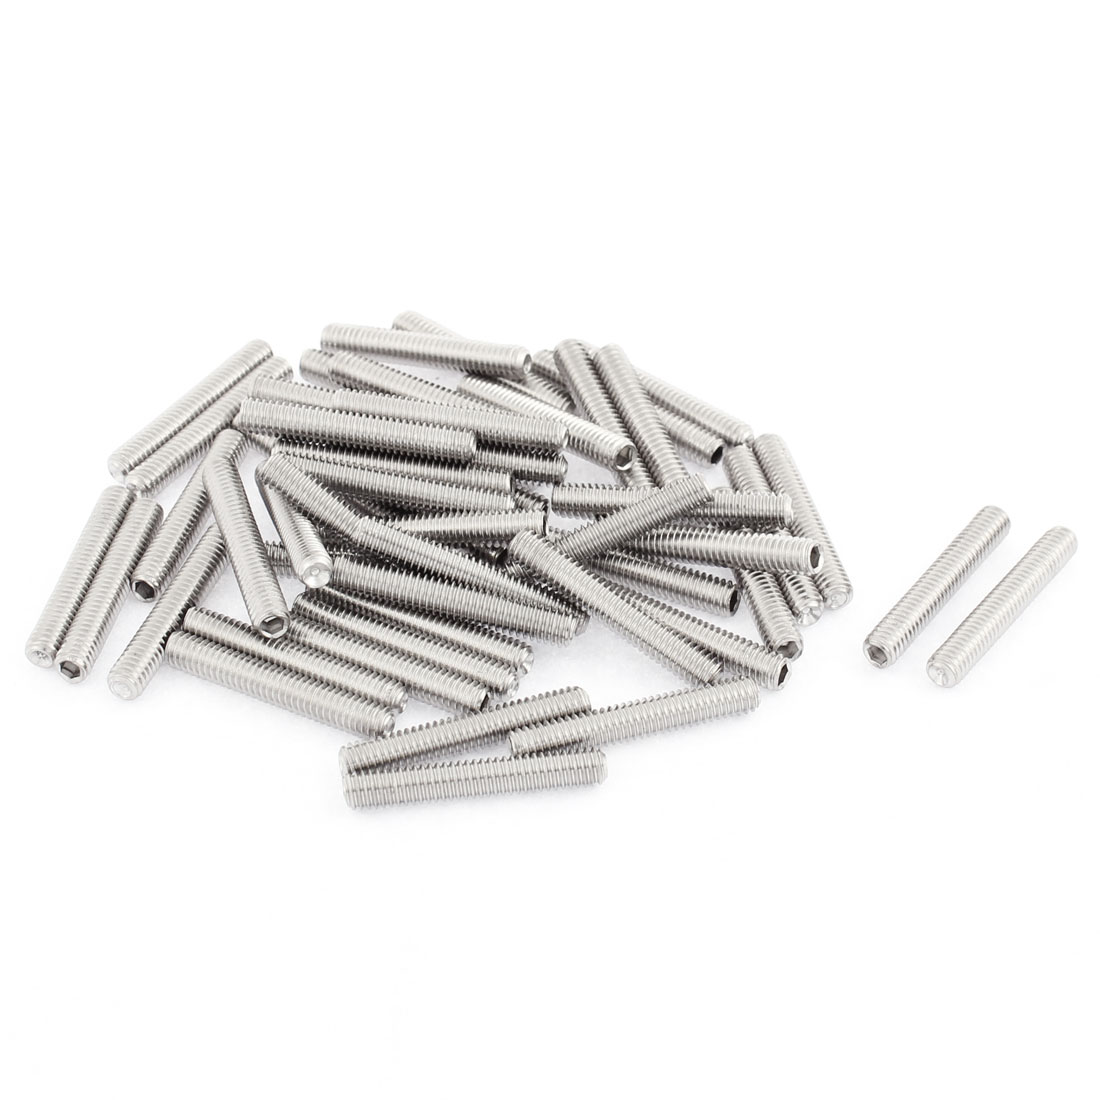 Uxcell M4x25mm Stainless Steel Hex Socket Set Cap Point Grub Screws Silver Tone (50-pack)